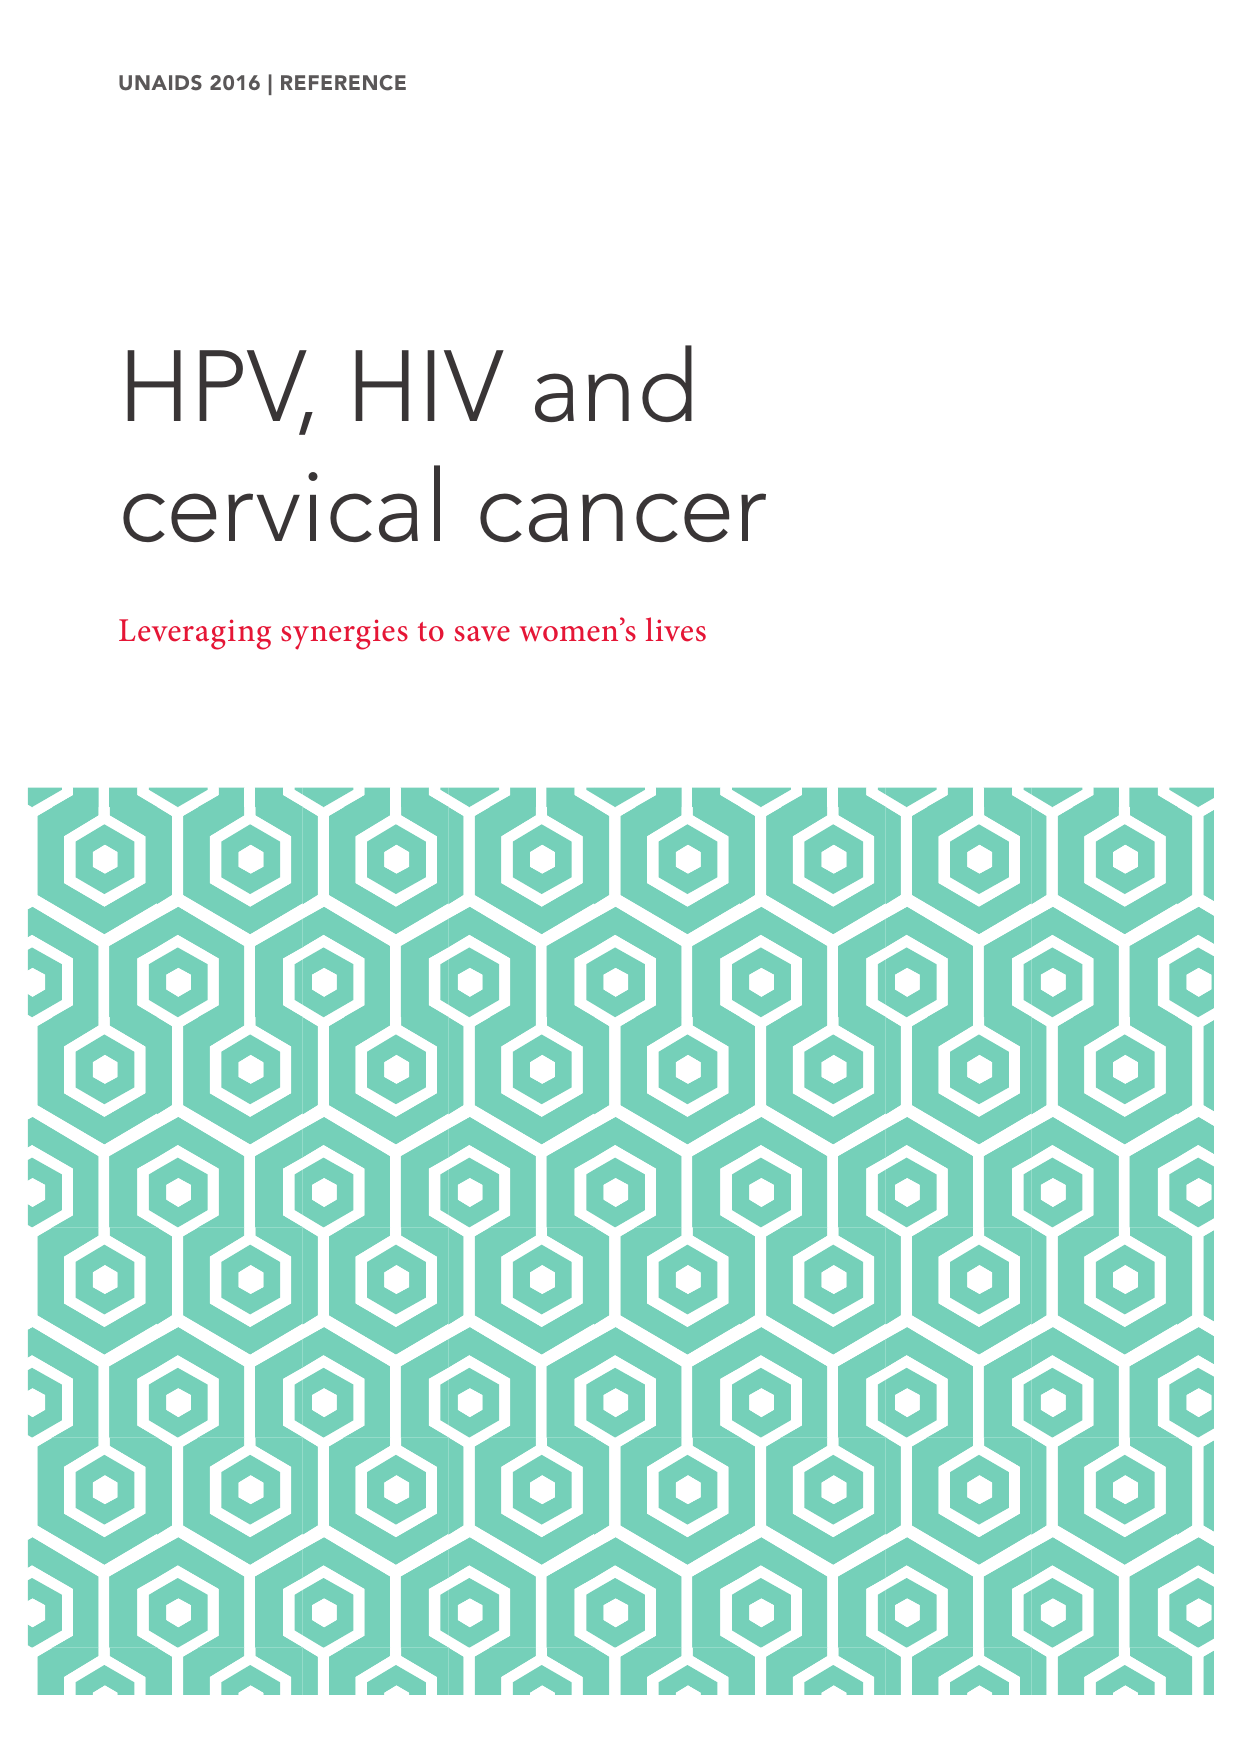 link between hiv and cervical cancer